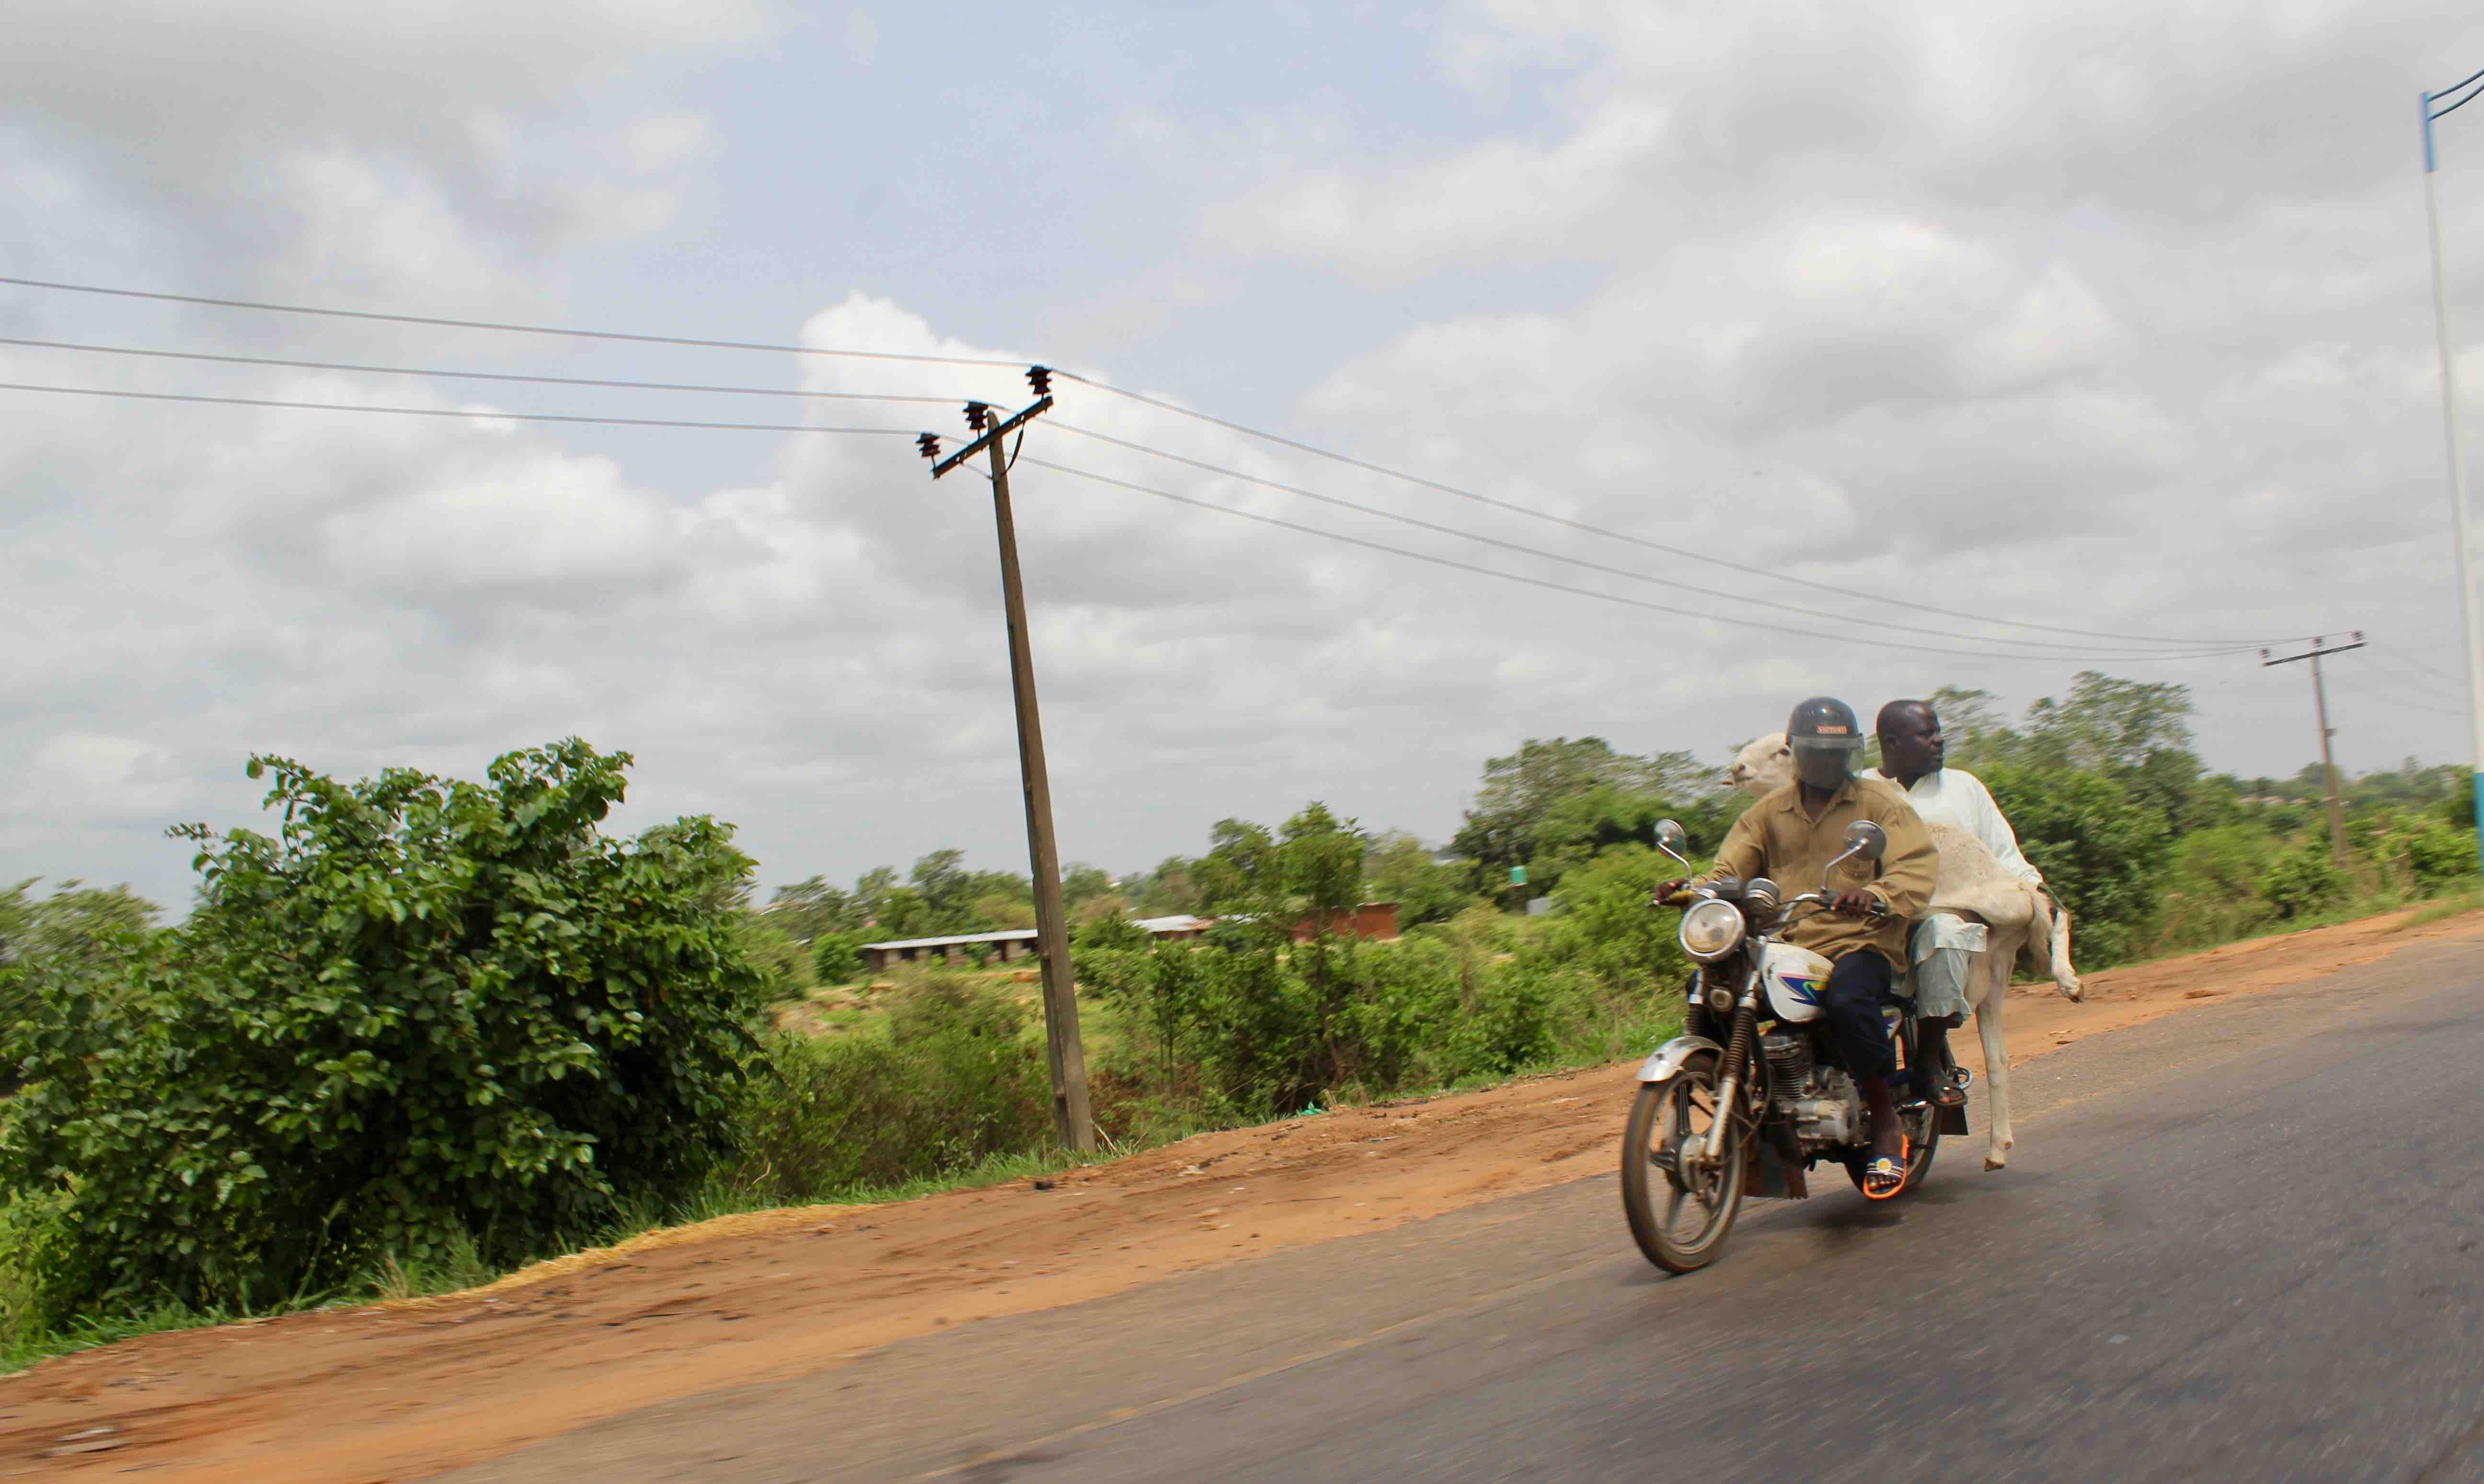 Two men and a ram riding a motorcycle, Nnewi, Anambra State, Nigeria. #JujuFilms